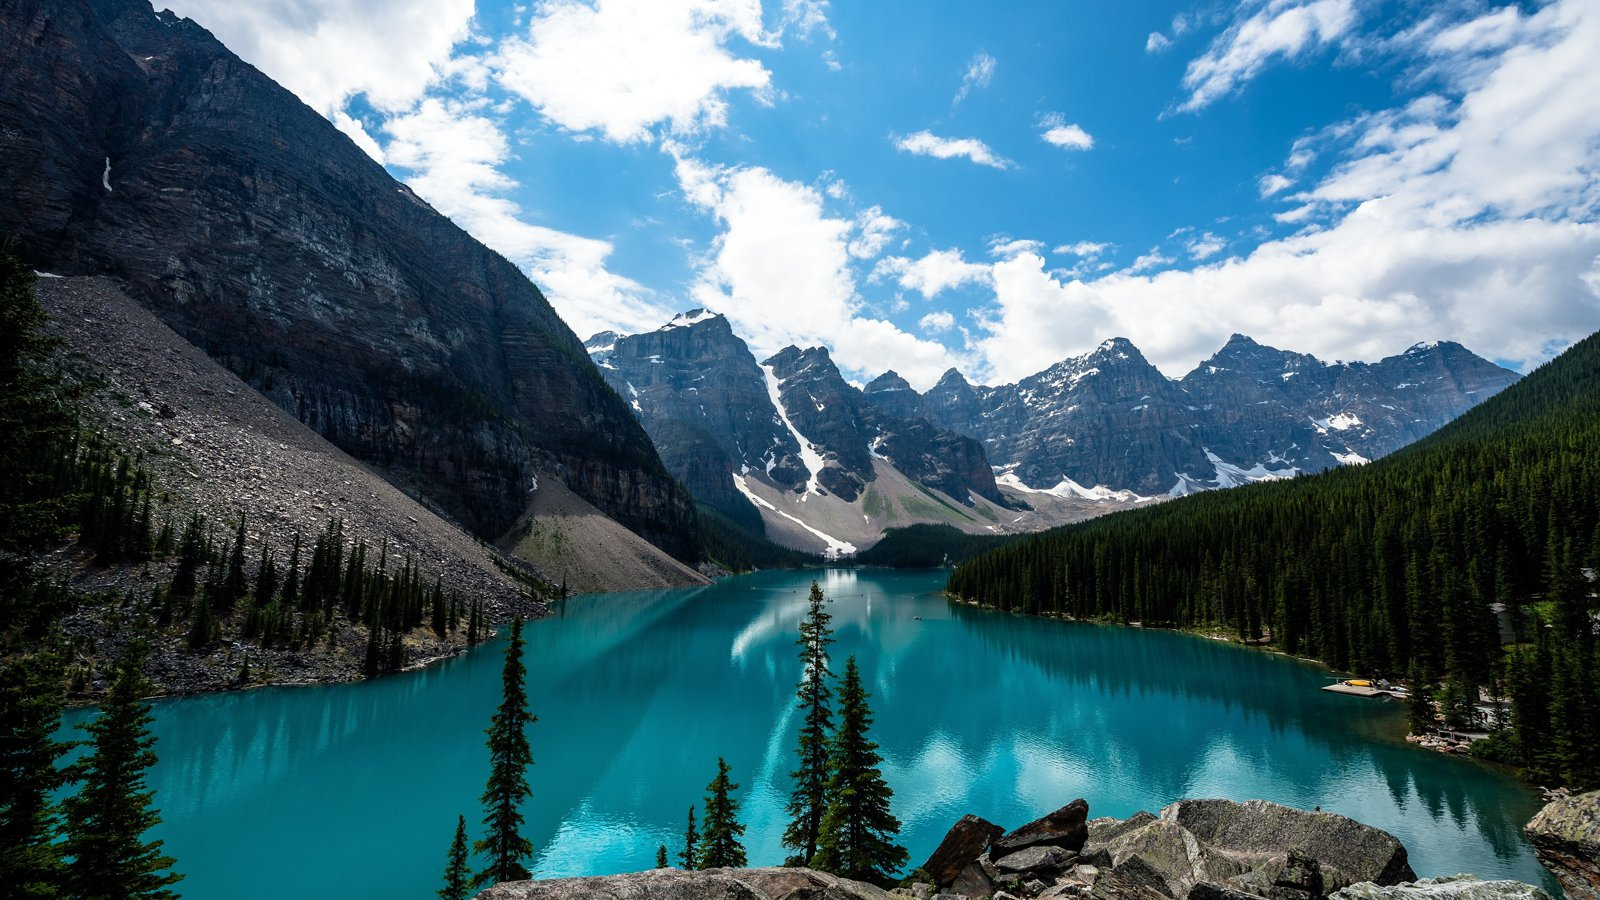 12 Amazing Sights You Have To See In Banff, Canada